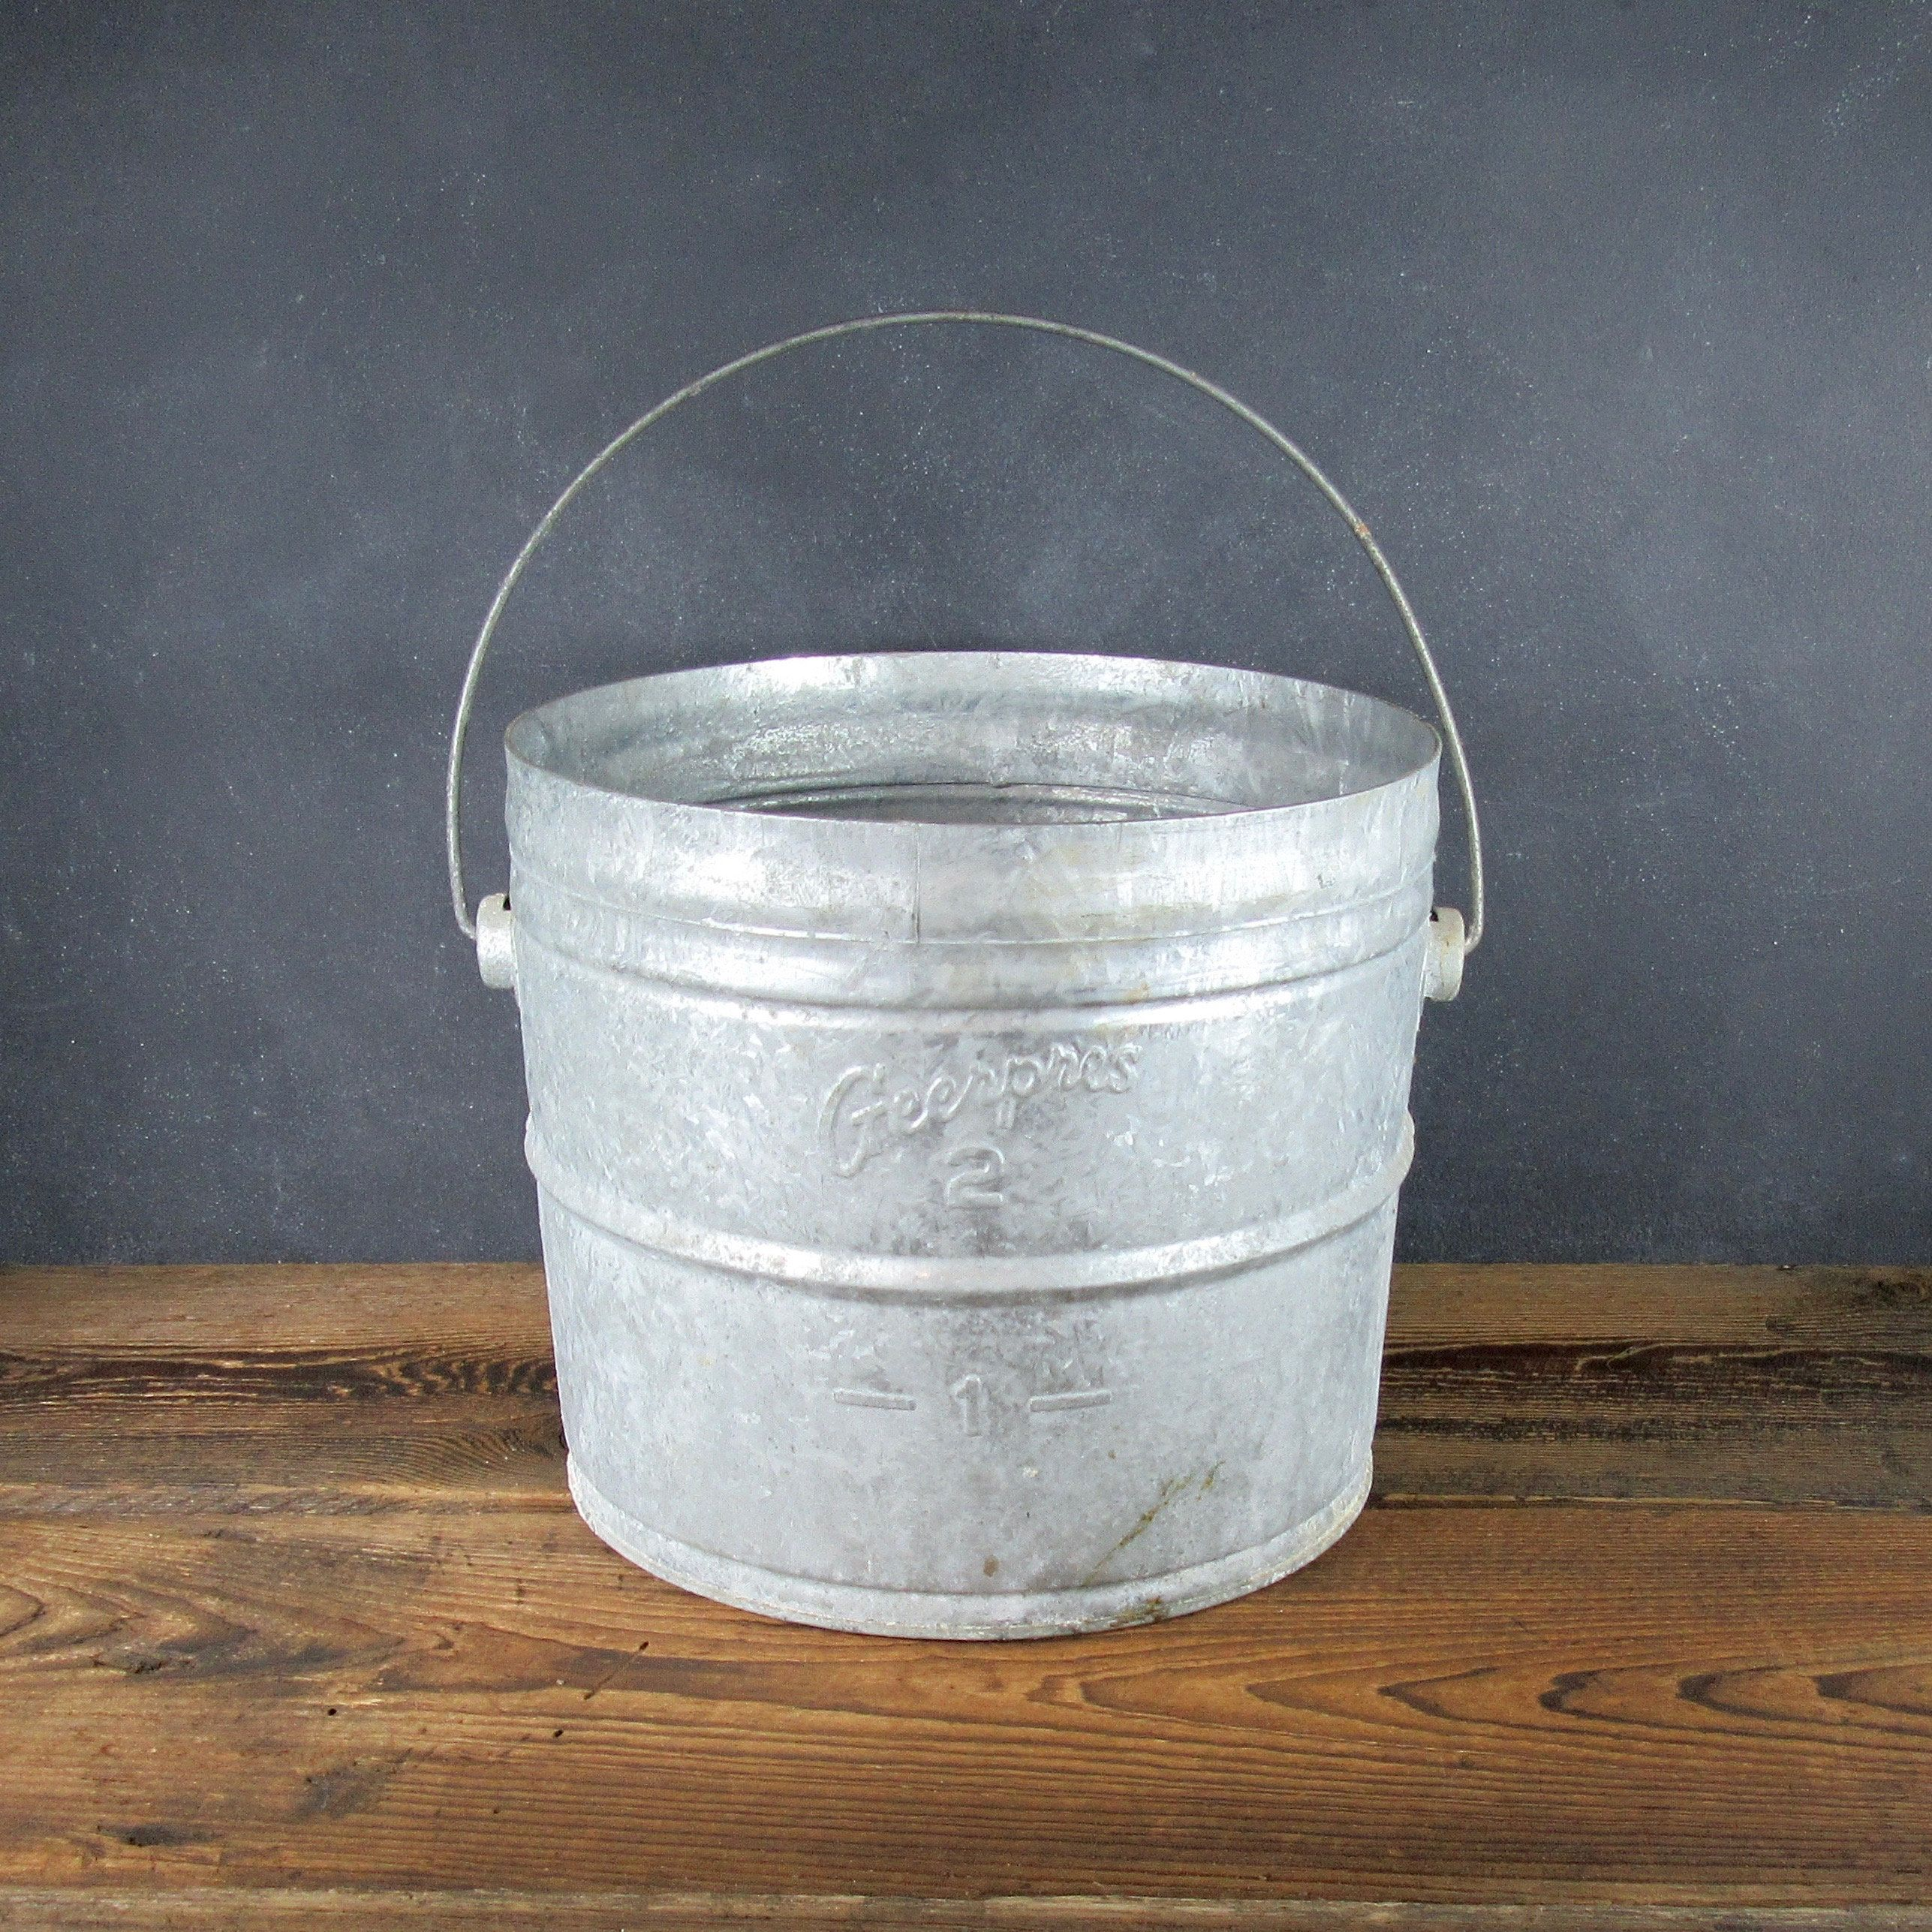 Vintage Galvanized Bucket Geerpres Industrial Pail 2 Gallon Metal Bucket Milk Pail Mop Bucket Rustic Decor Farmhouse Decor Galvanized Buckets Milk Pail Metal Bucket